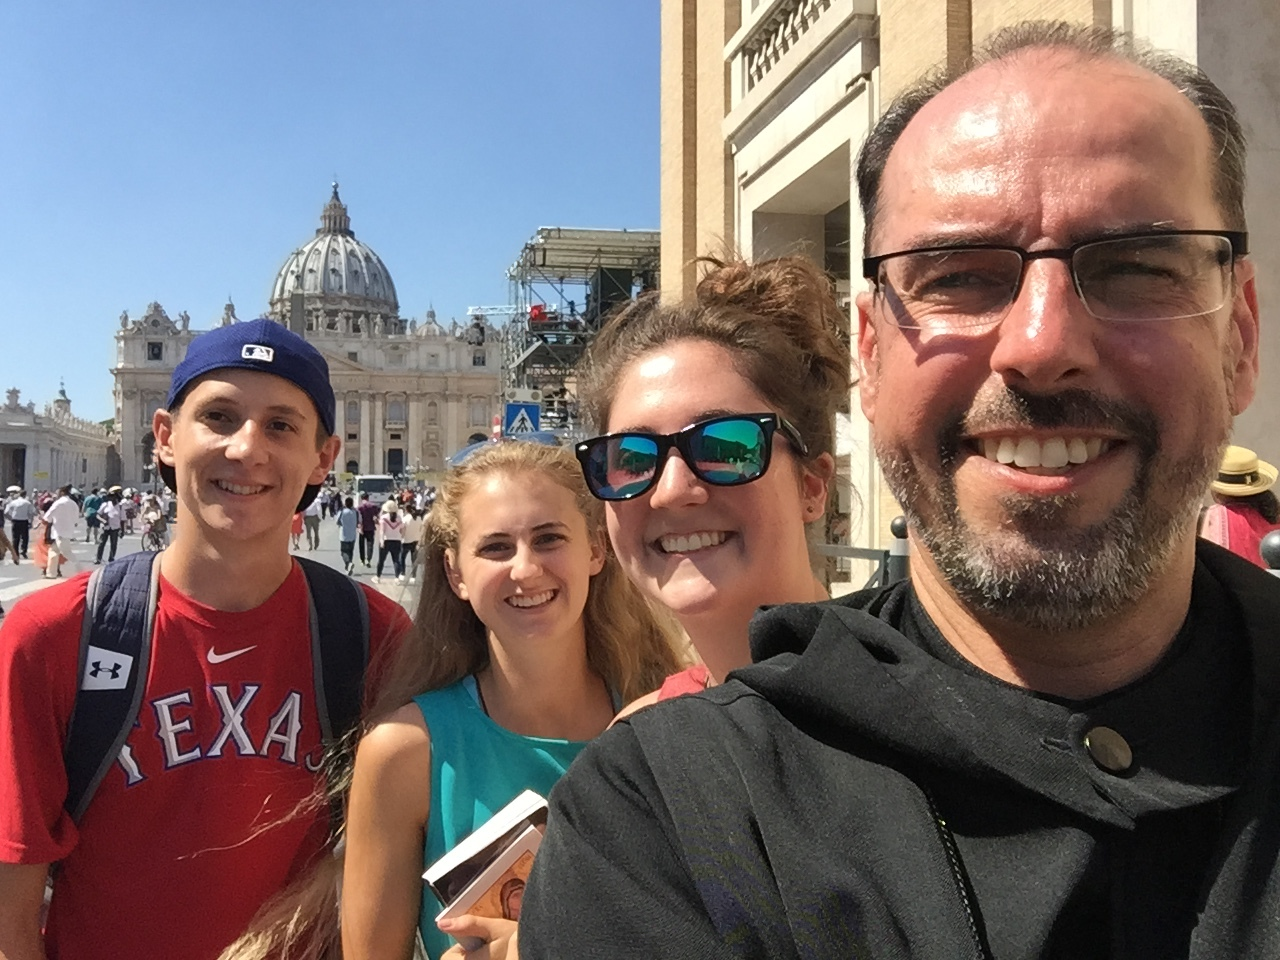 Abbot james with benedictine college students in rome